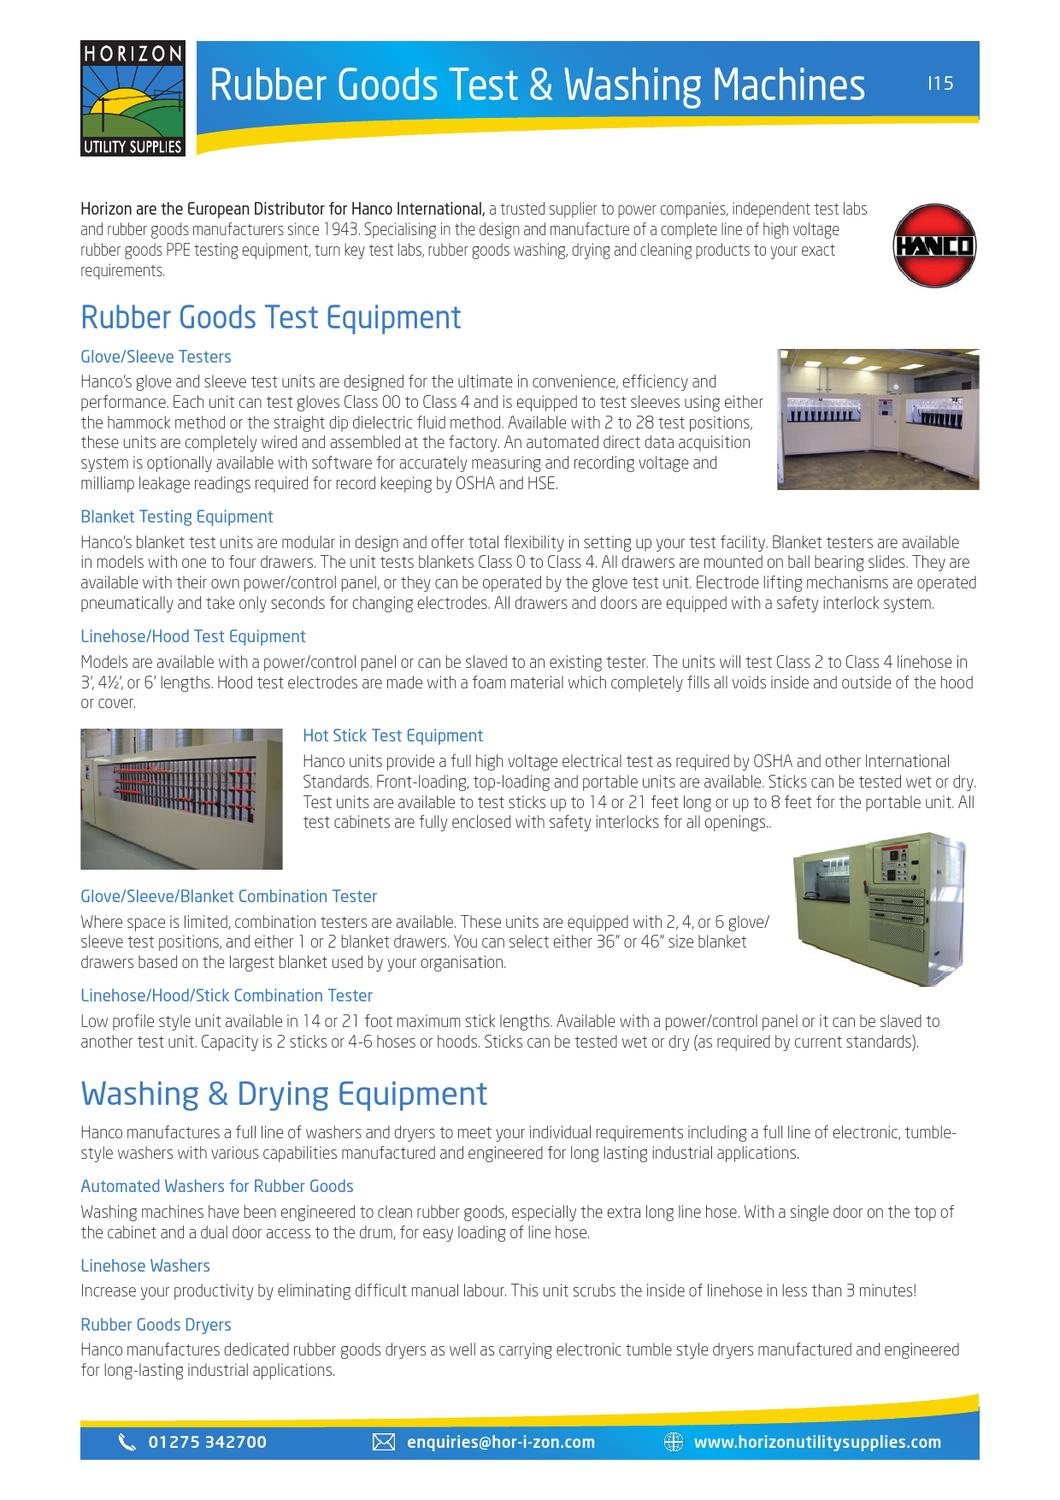 Horizon Utility Supplies Catalogue by Andrew Talbot - issuu